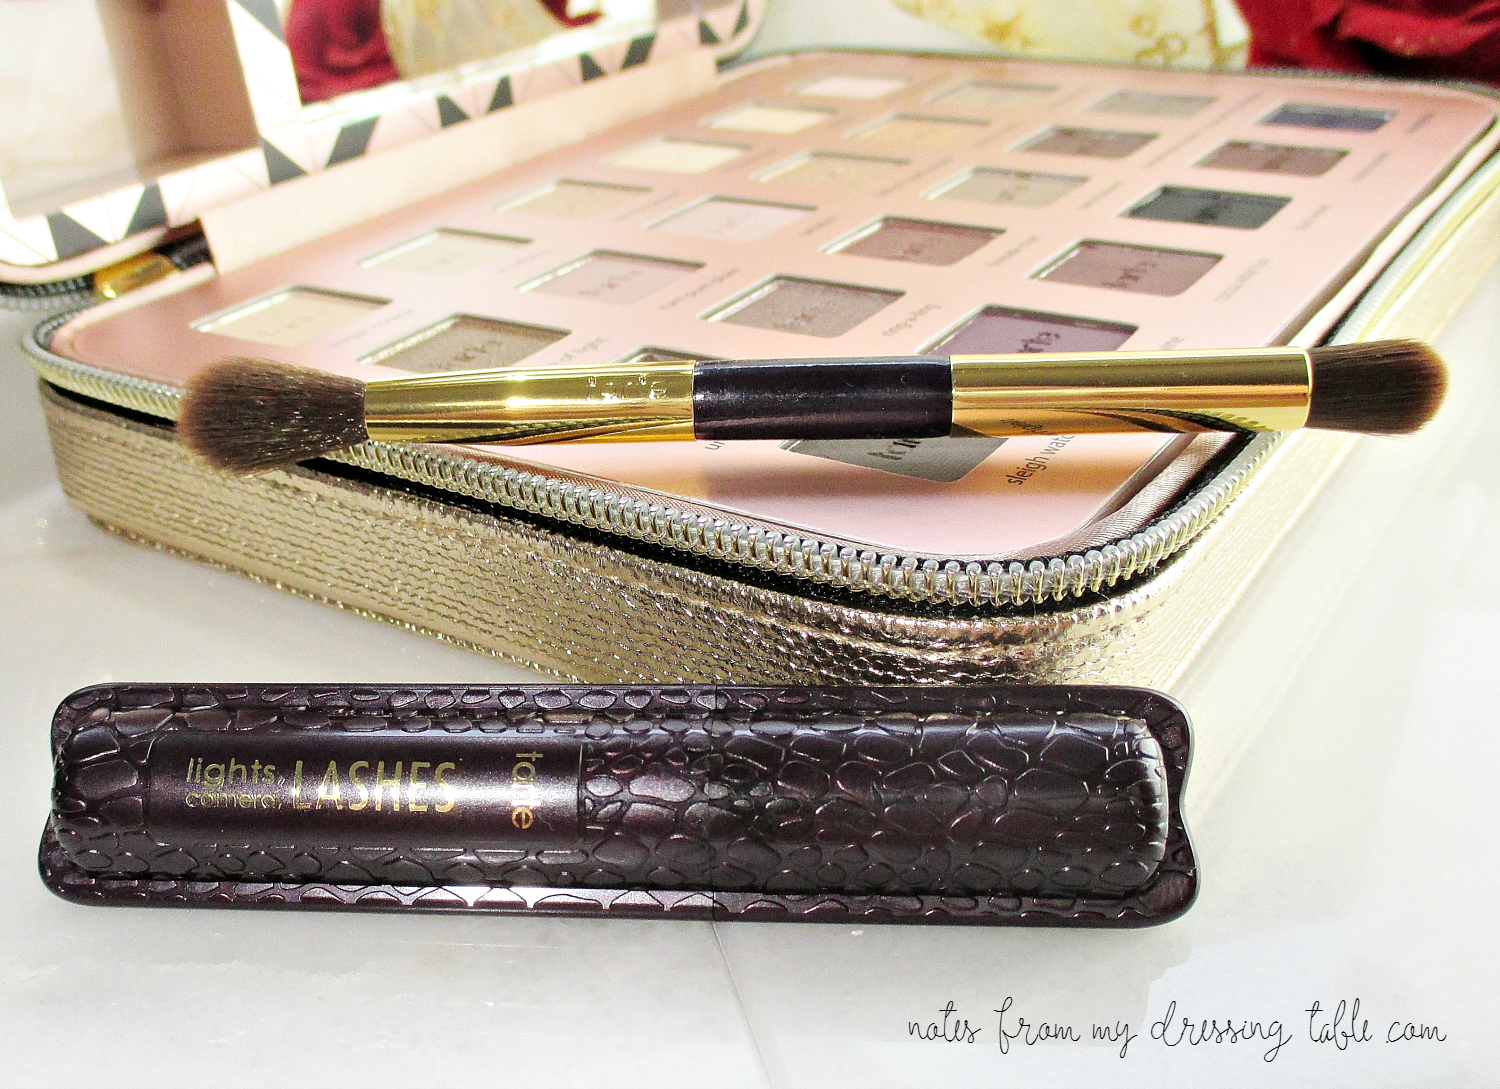 Tarte Light of the Party Mini Mascara and Travel Brush Details notesfrommydressingtable.com